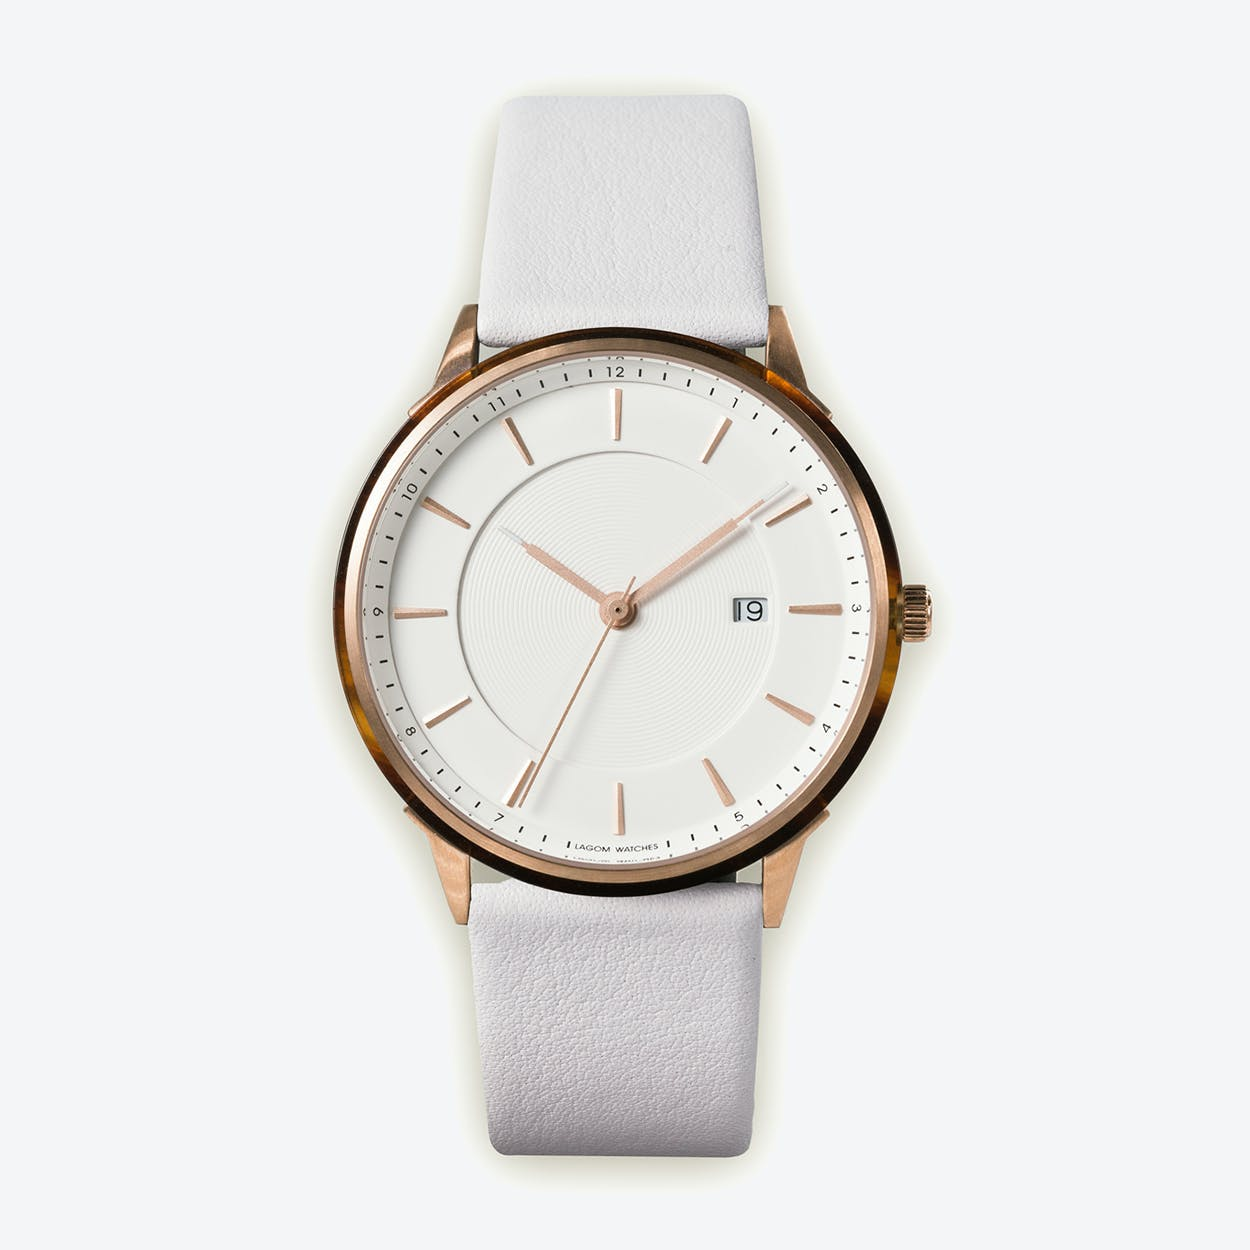 BÖRJA - Rose Gold Watch in Offwhite Face and Linio White Leather Strap